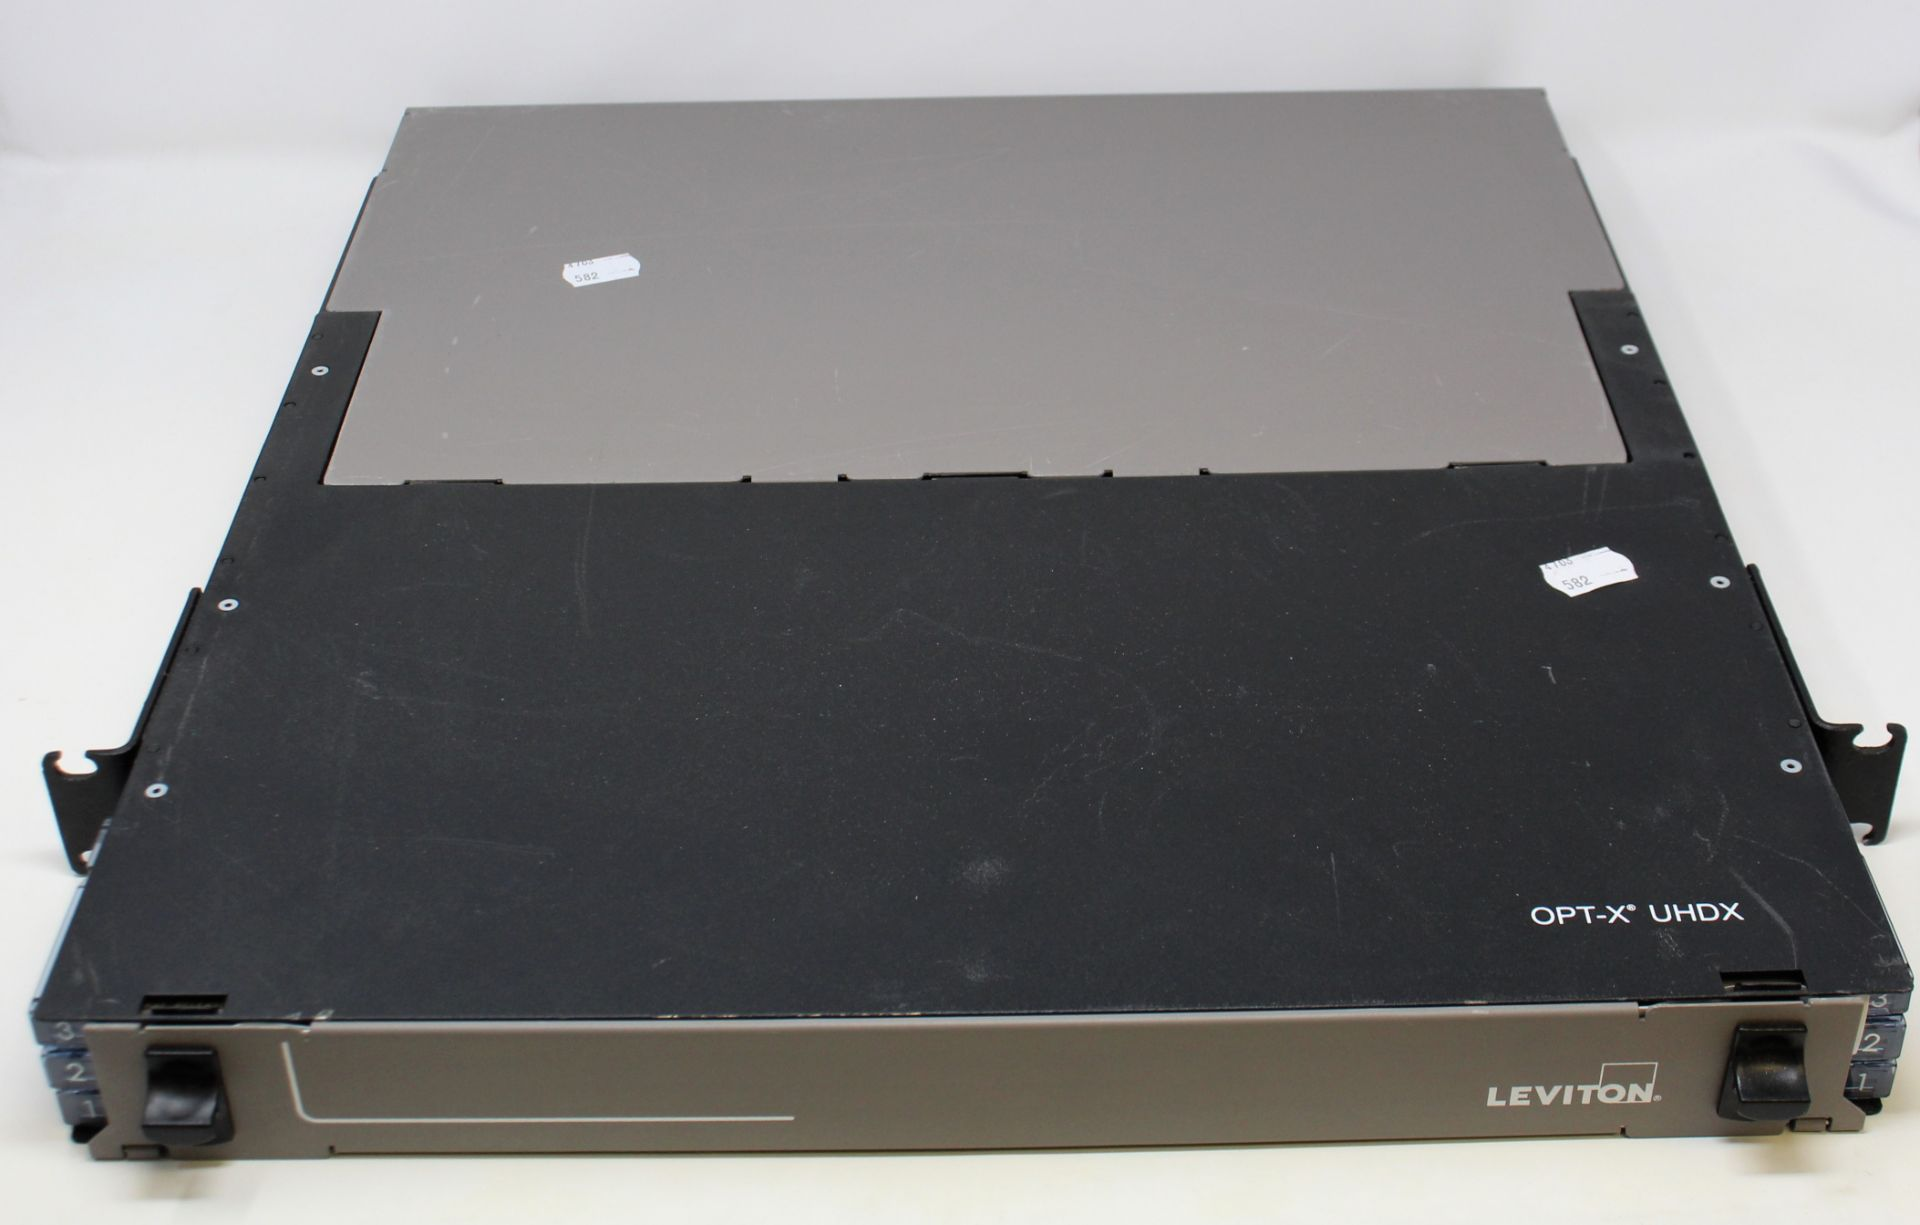 A pre-owned Leviton OPT-X UHDX 1RU Fiber Enclosure (Untested, sold as seen).